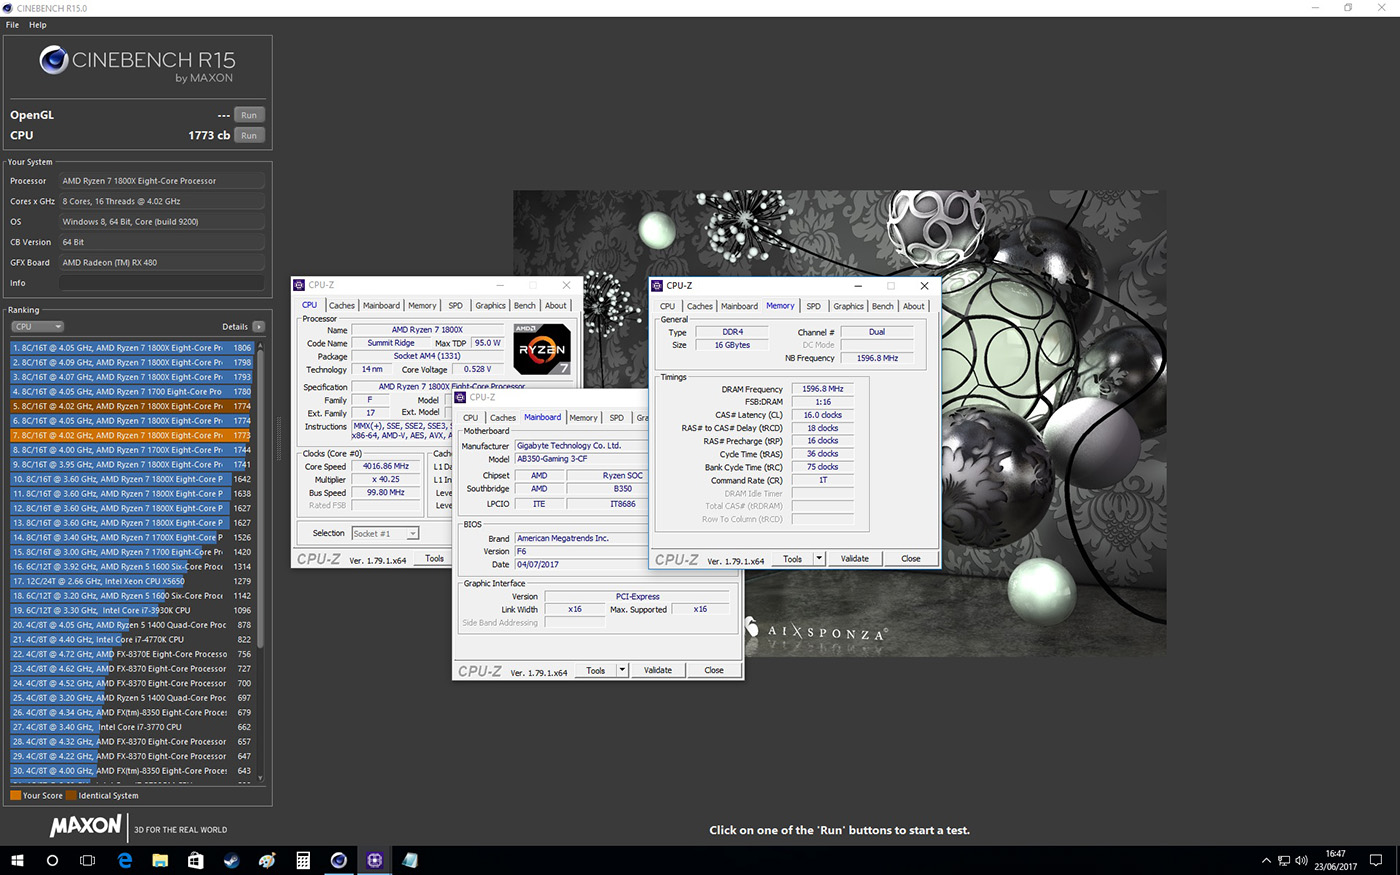 GIGABYTE GA-AB350 Gaming 3 Review - Test Setup & Overclocking